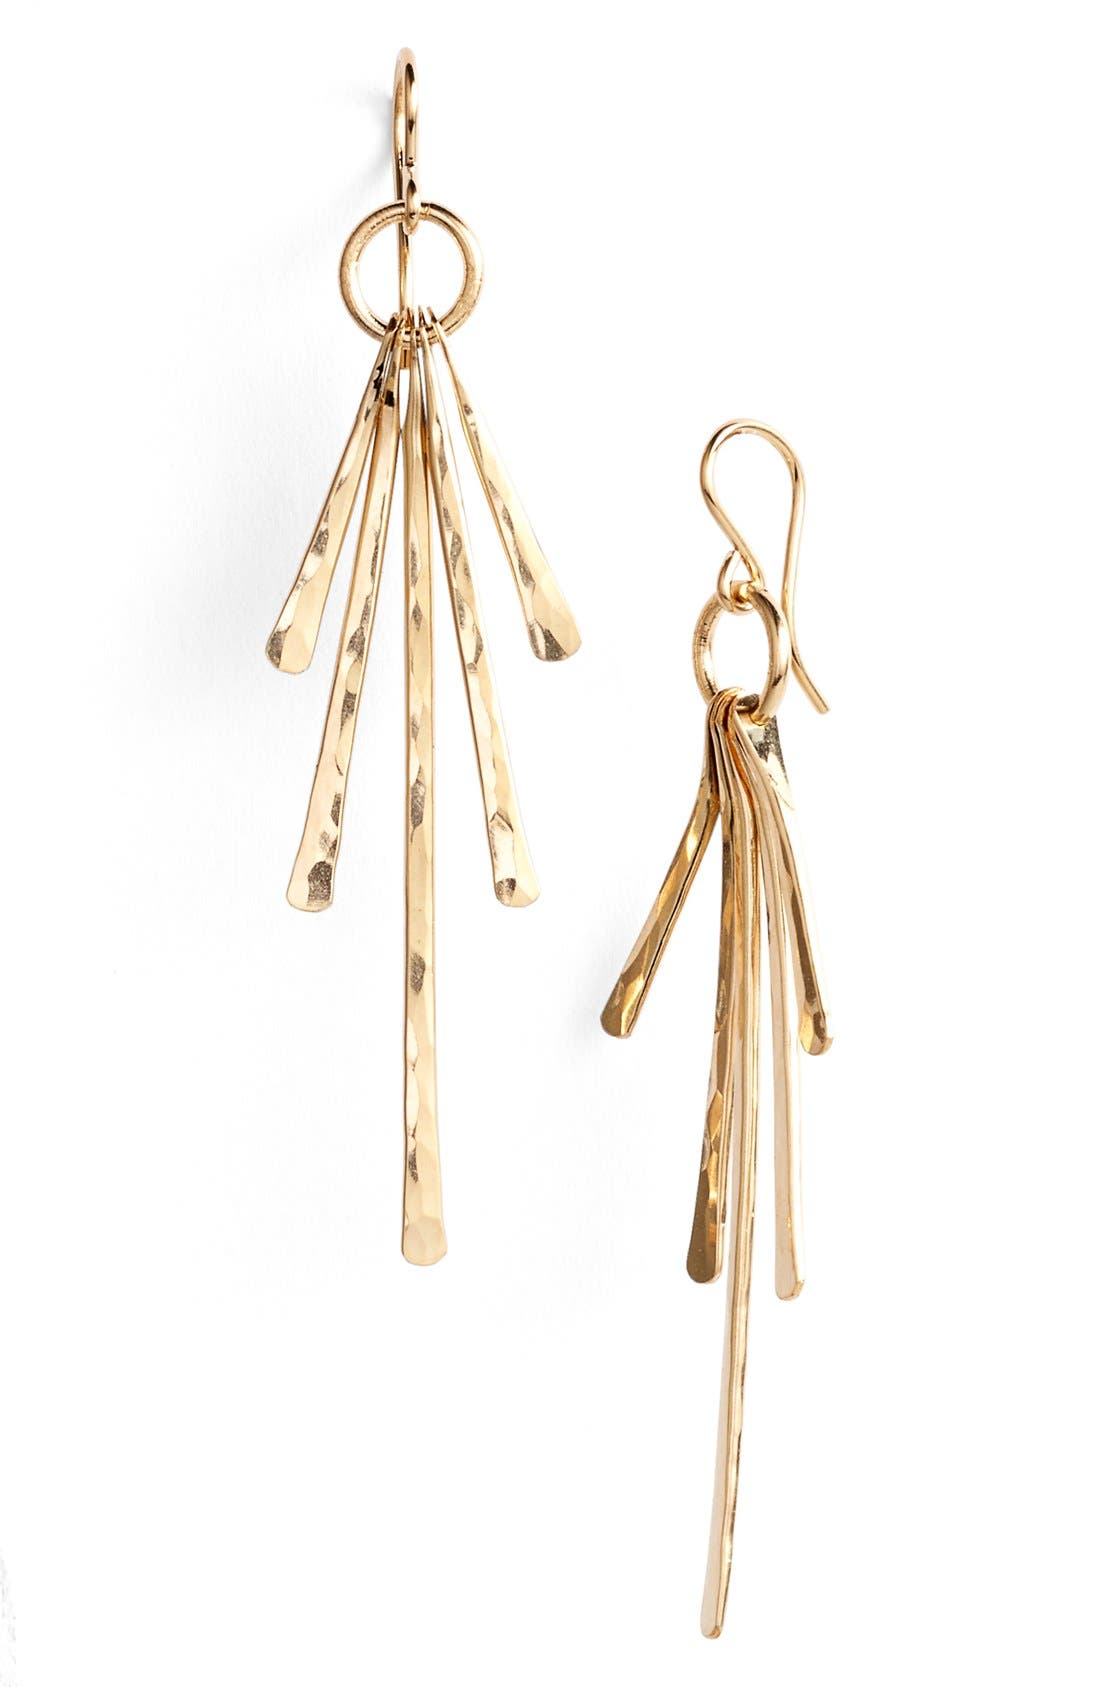 Ija Sunburst Drop Earrings,                             Main thumbnail 1, color,                             14K Gold Fill